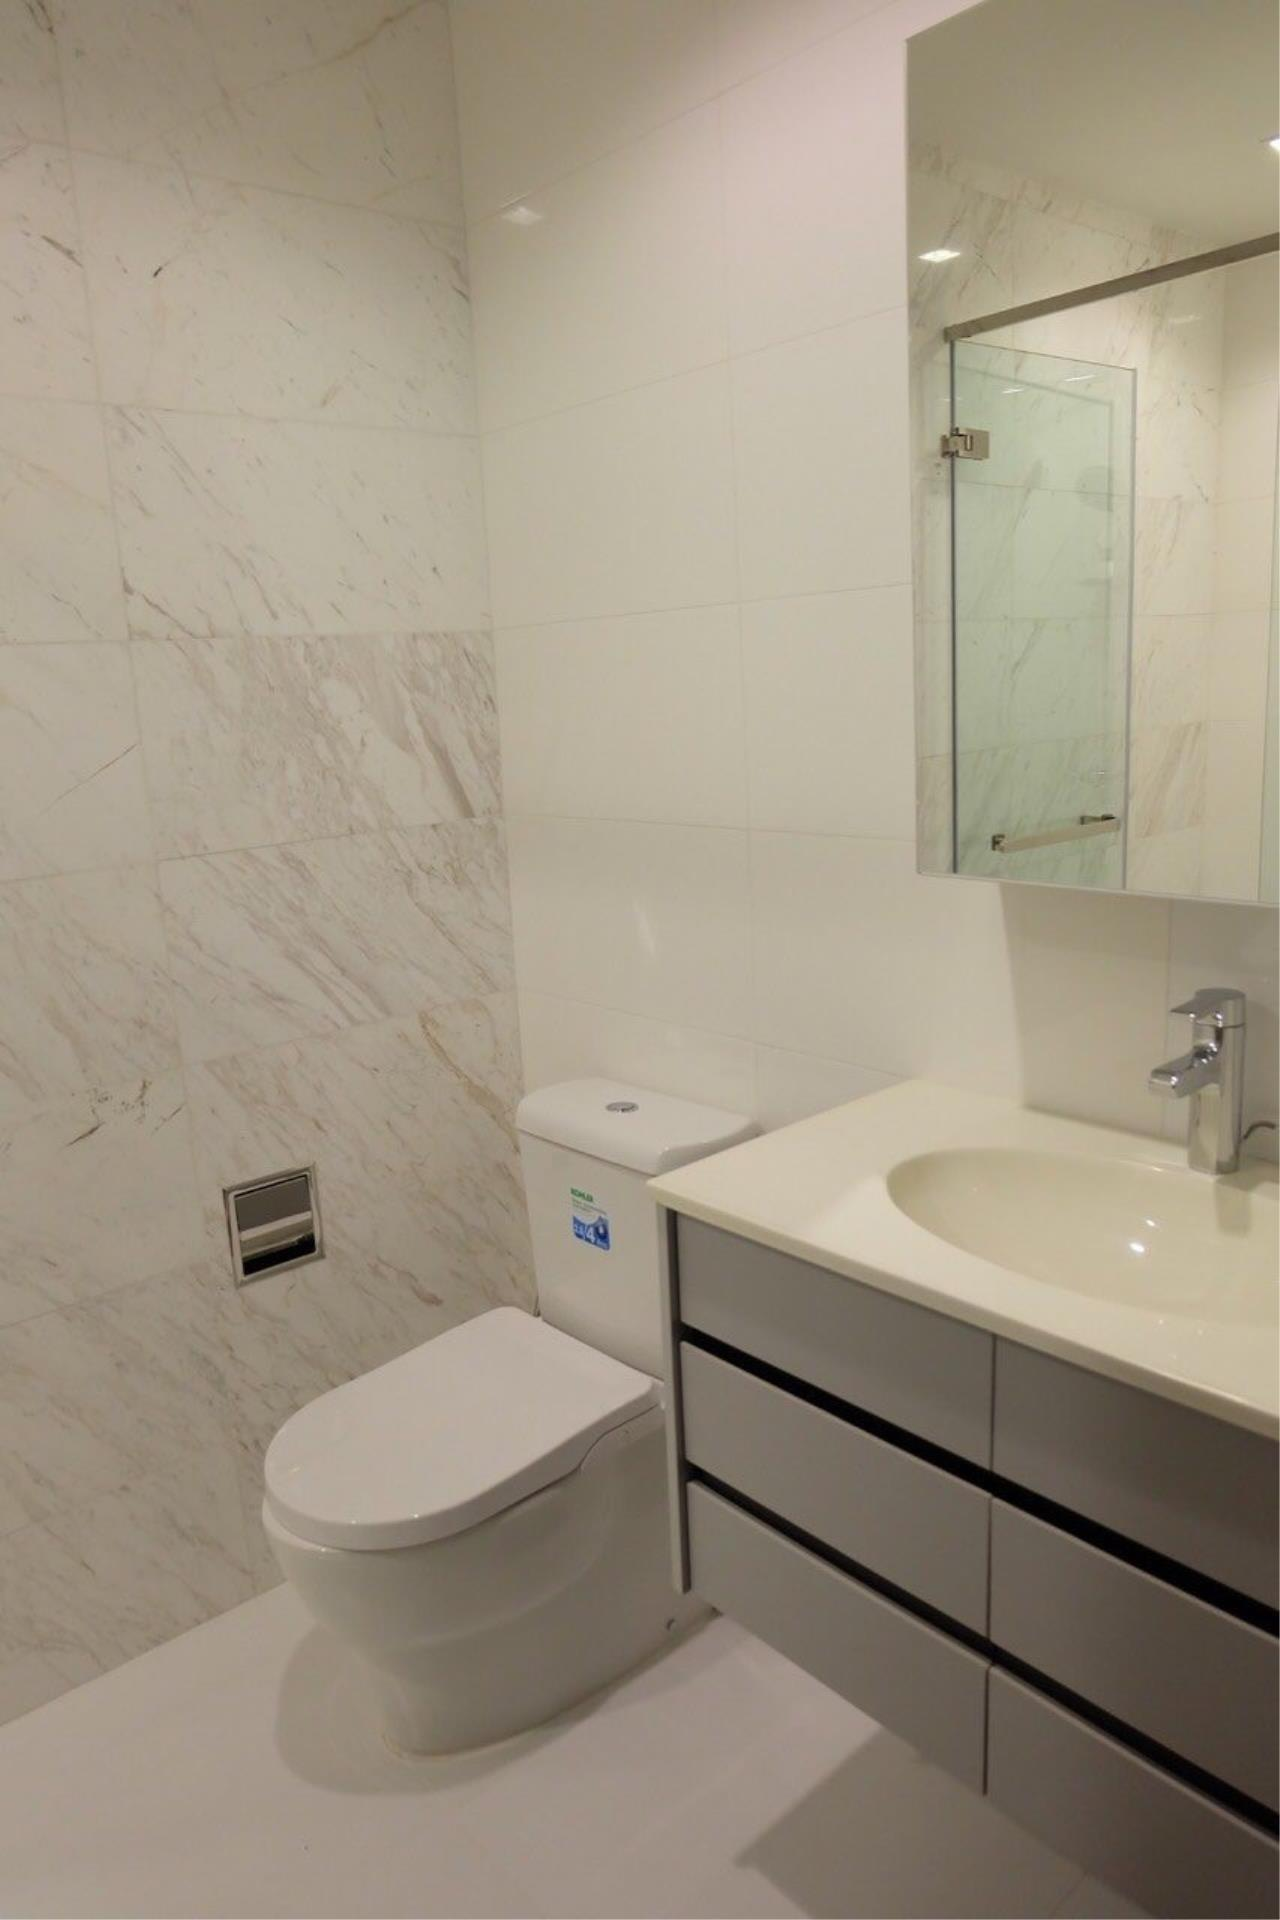 Piri Property Agency's Modern 2 Bedrooms in the HQ Condo for rent on high floor 7